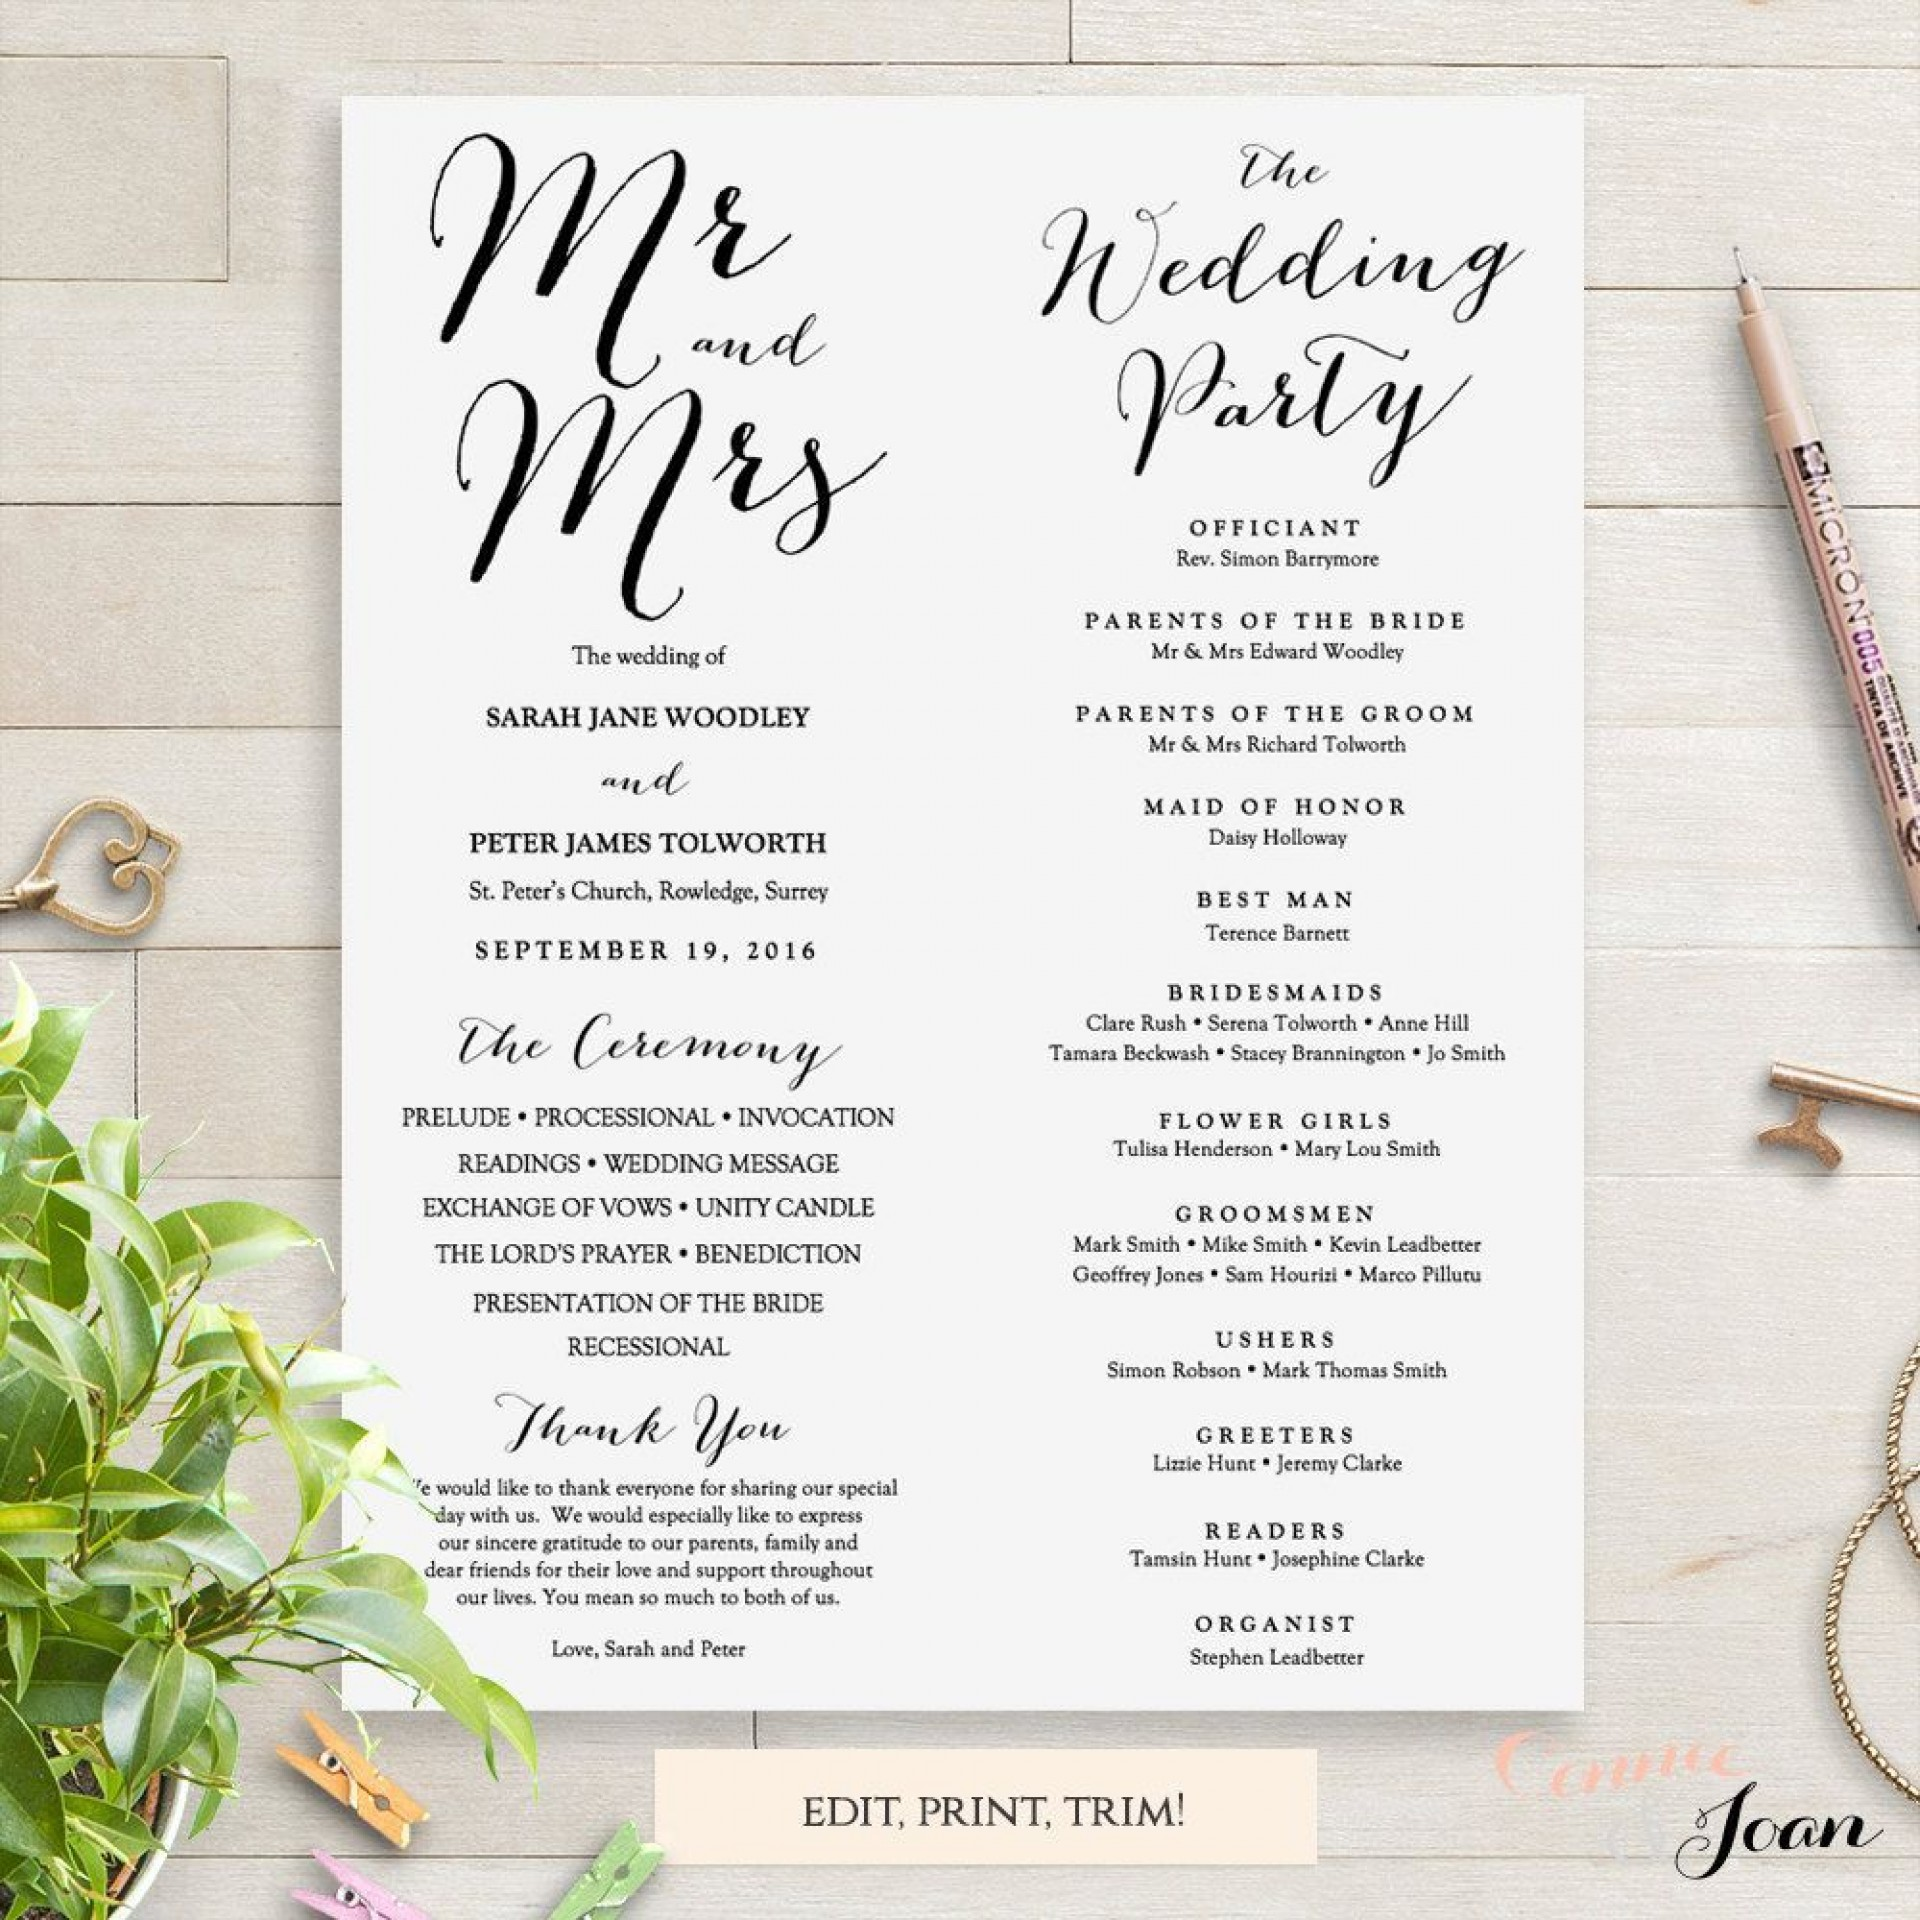 000 Impressive Wedding Order Of Service Template Free Download Idea  Downloadable That Can Be Printed1920